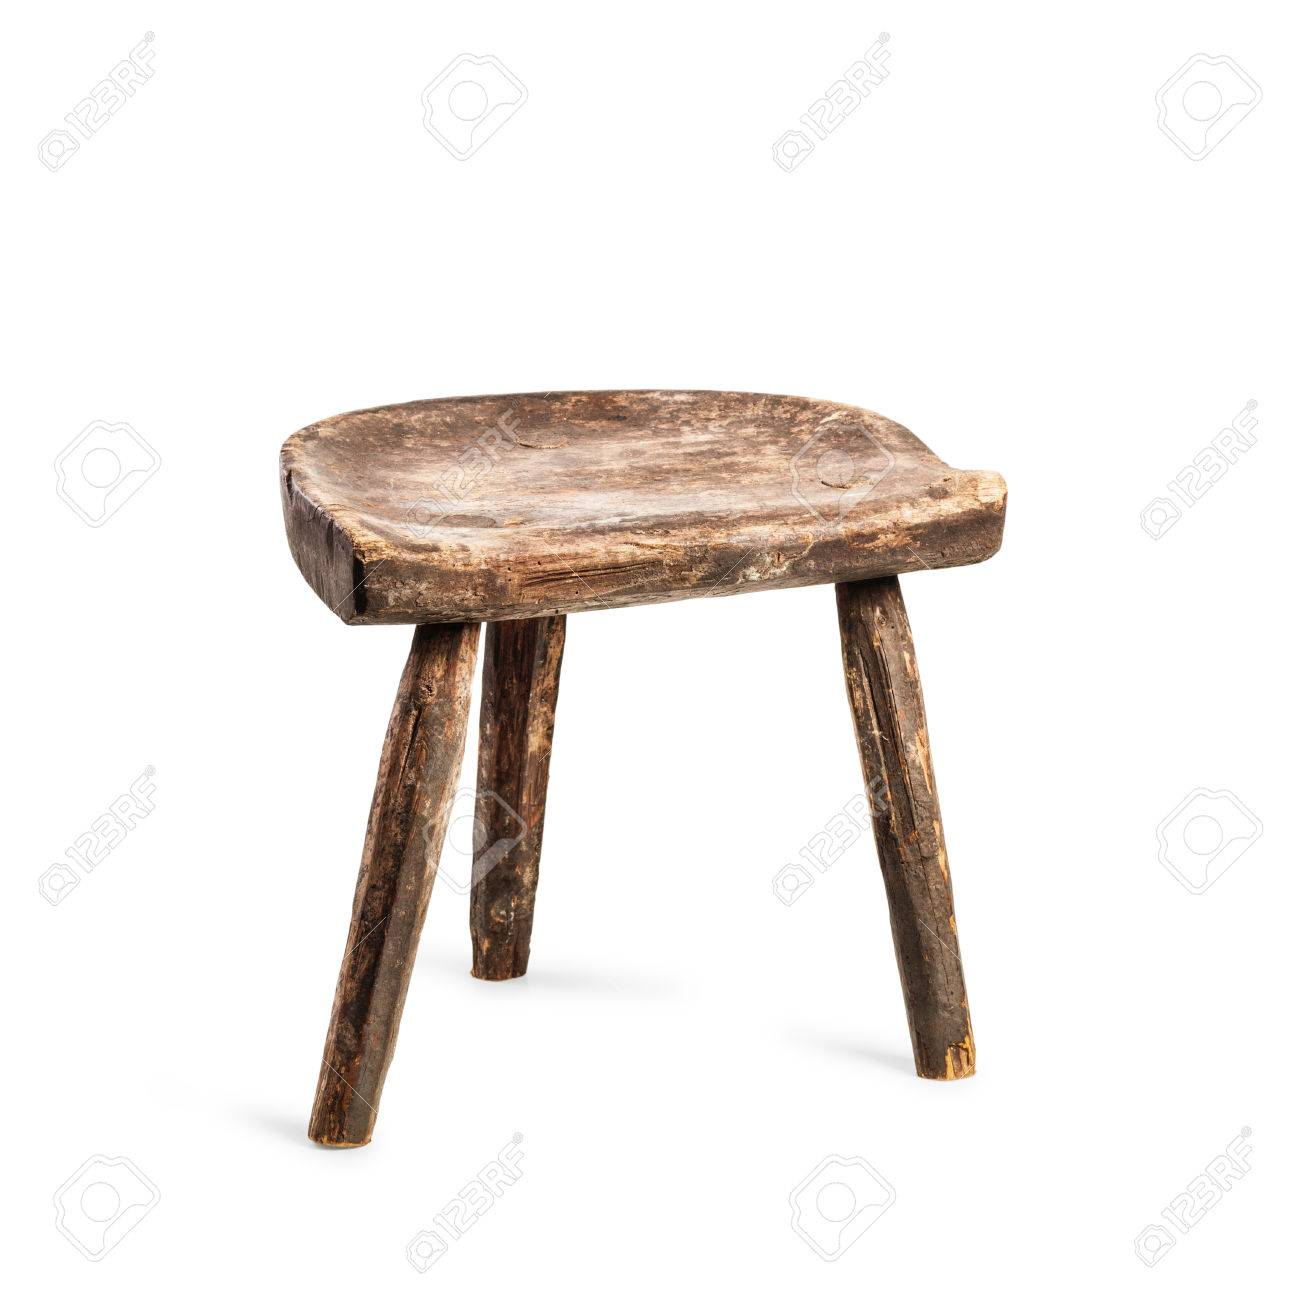 Stock Photo   Vintage Stool Isolated On White Background. Antique Three  Legs Chair. Single Object With Clipping Path